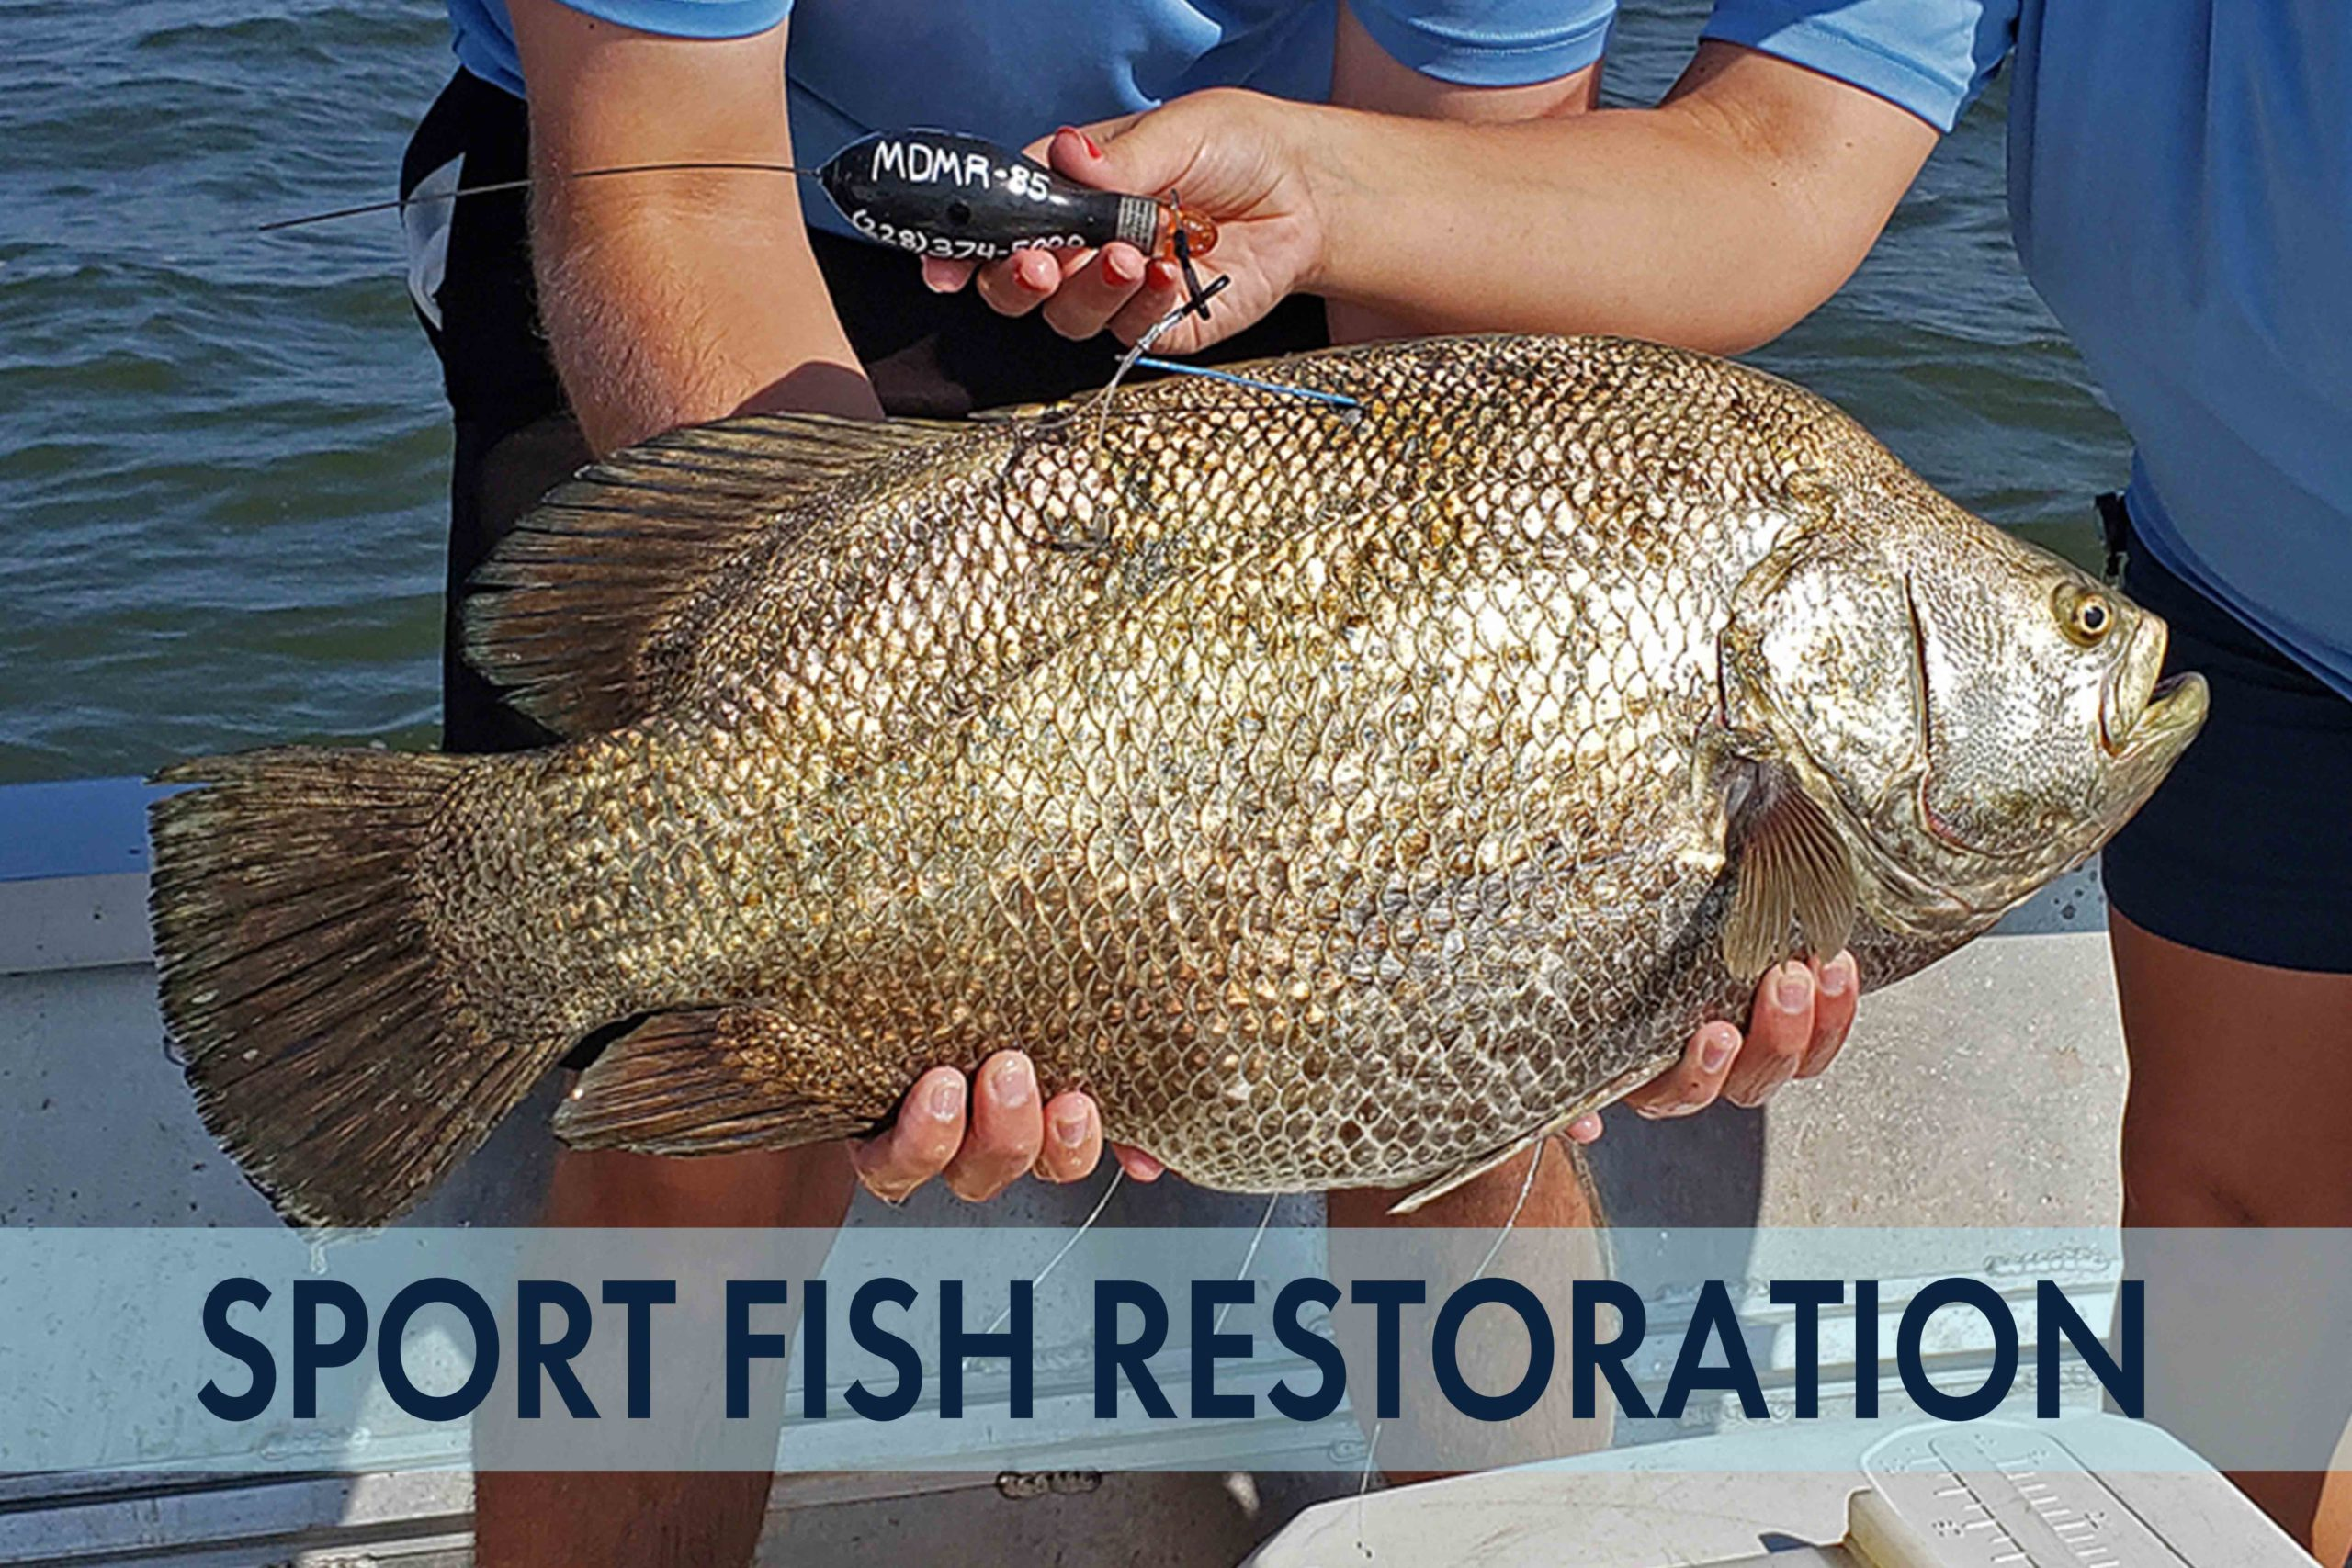 sport-fish-restoration-thumbnail